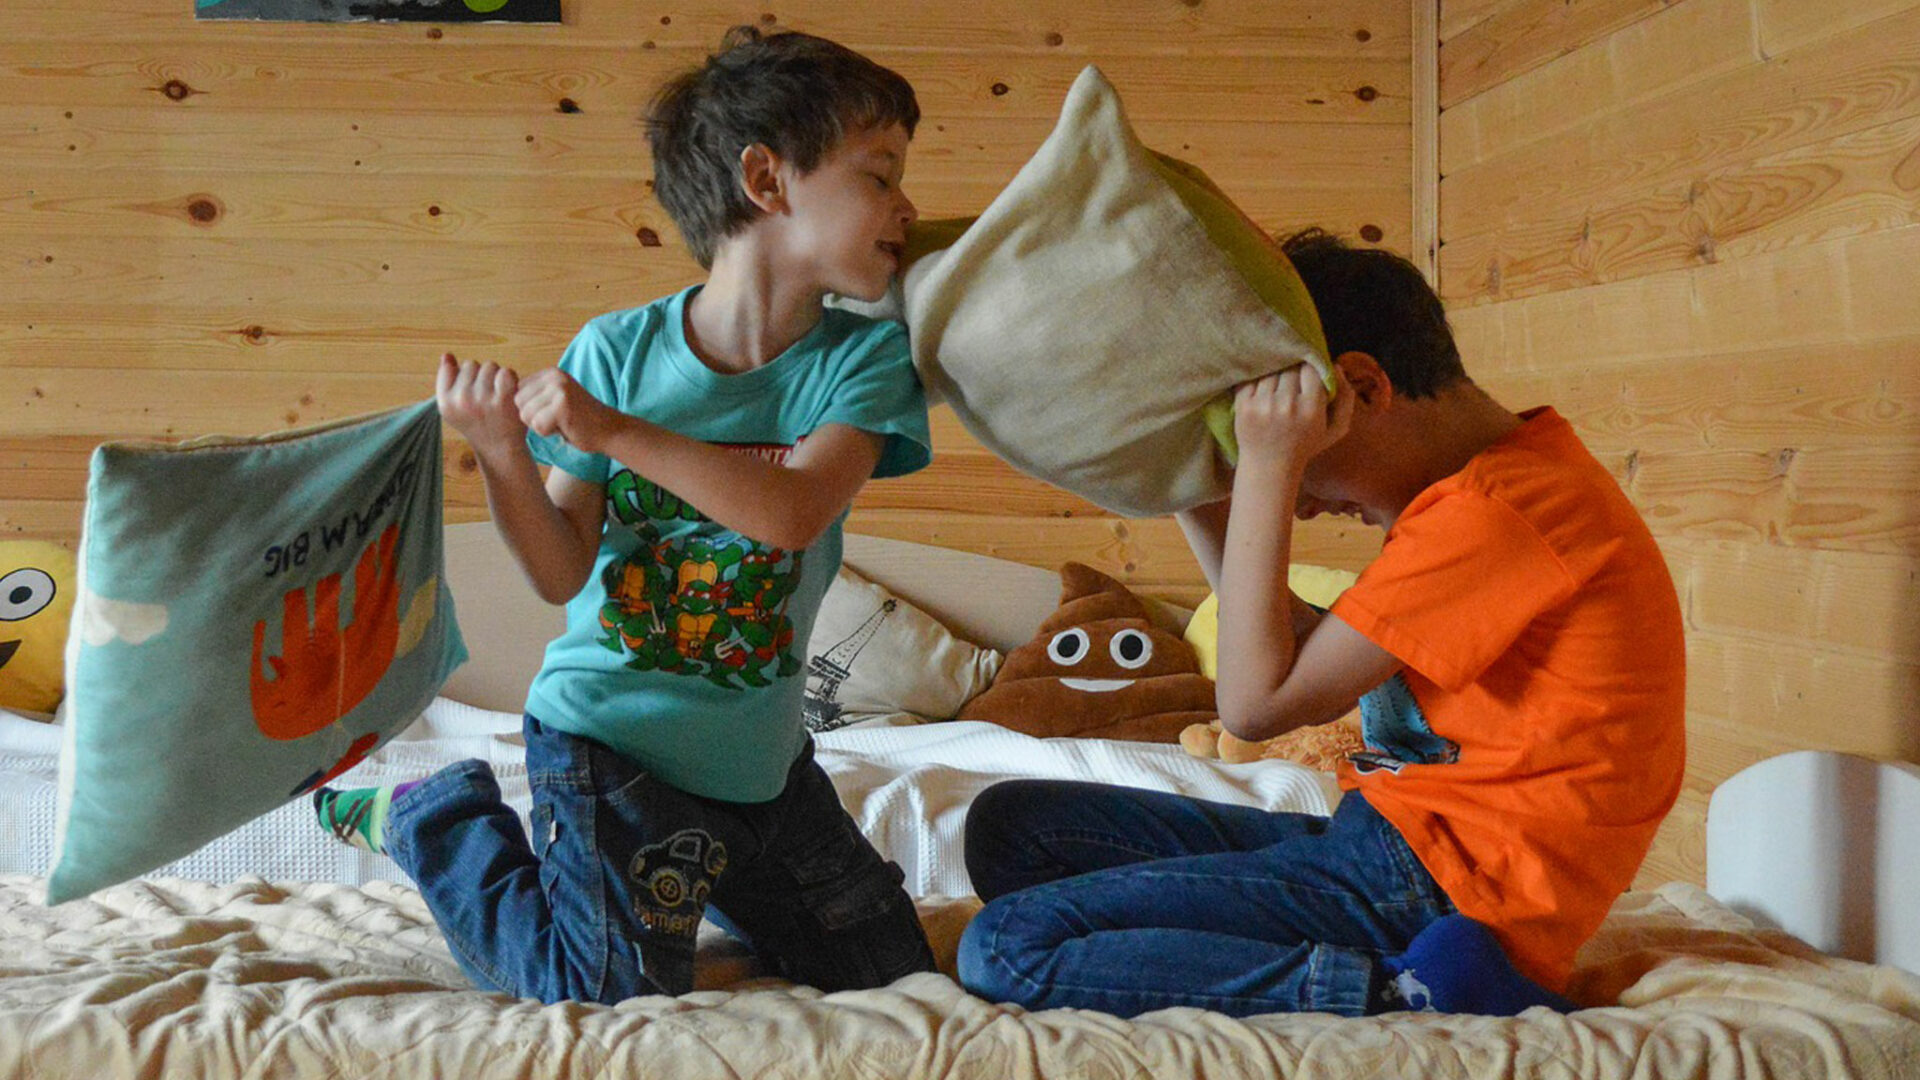 Hosting a kid's sleepover party? Here are our 6 steps and tips to help you pull it off